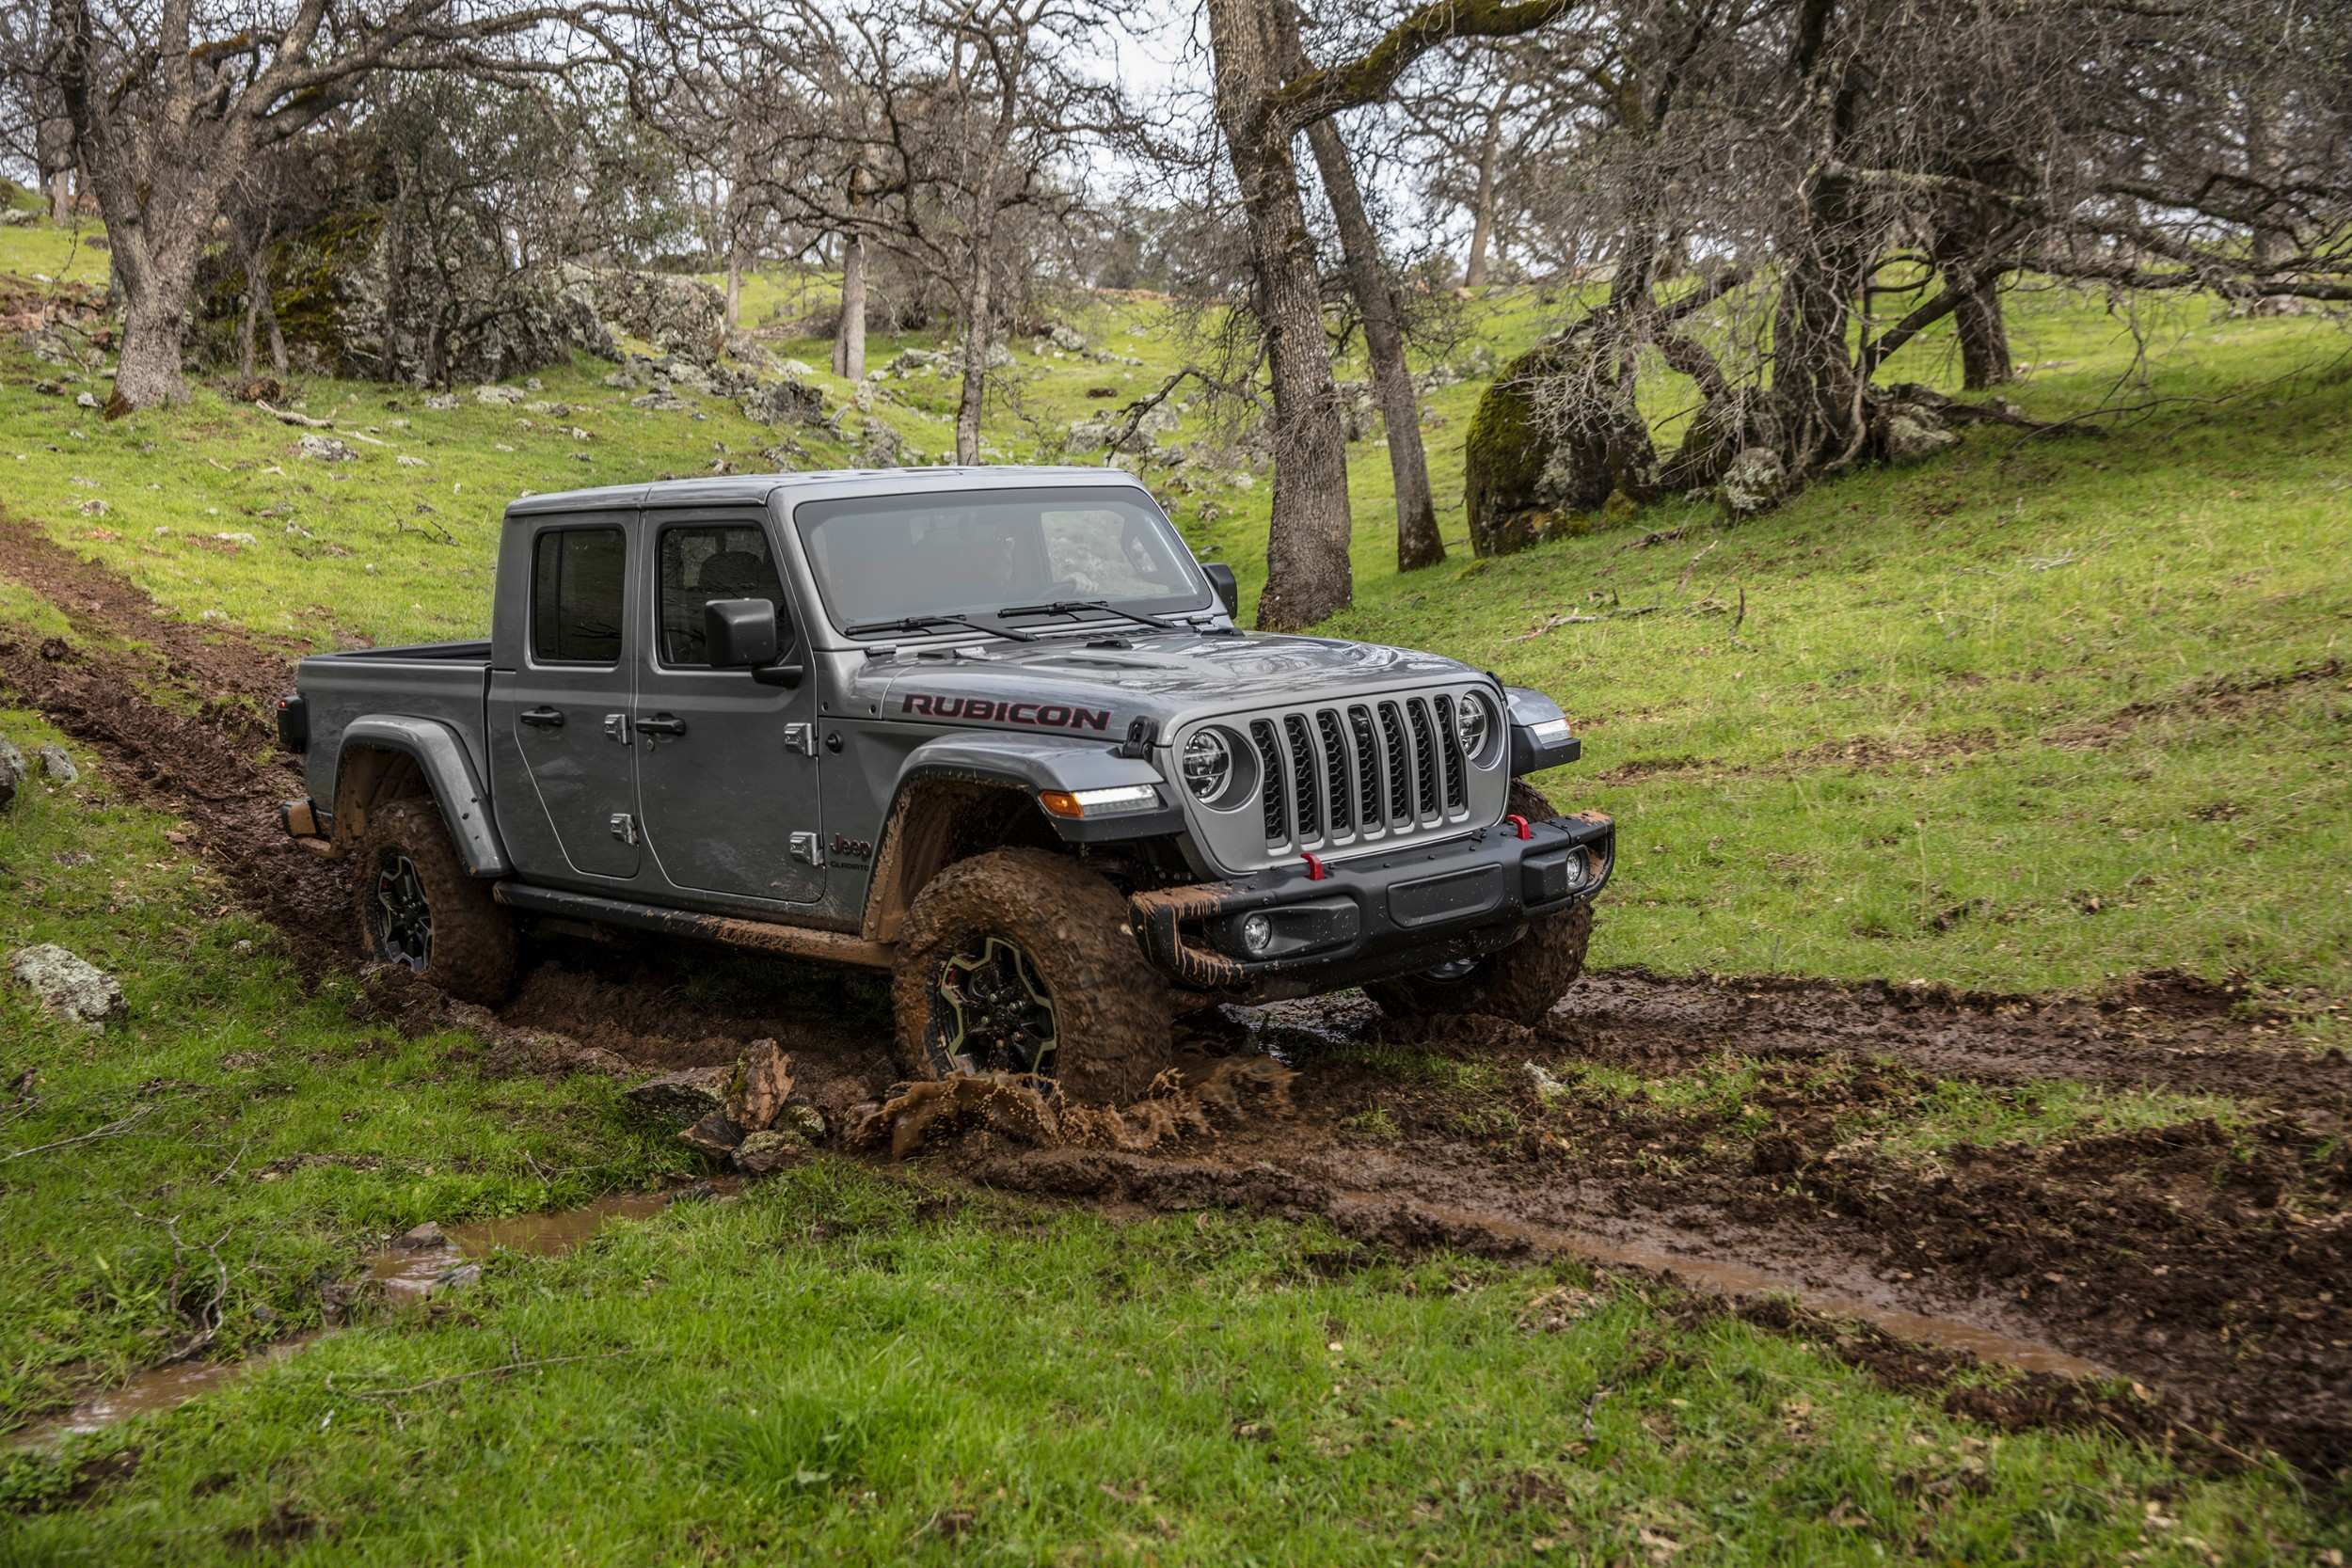 43 New Jeep Rubicon 2020 Price Model by Jeep Rubicon 2020 Price